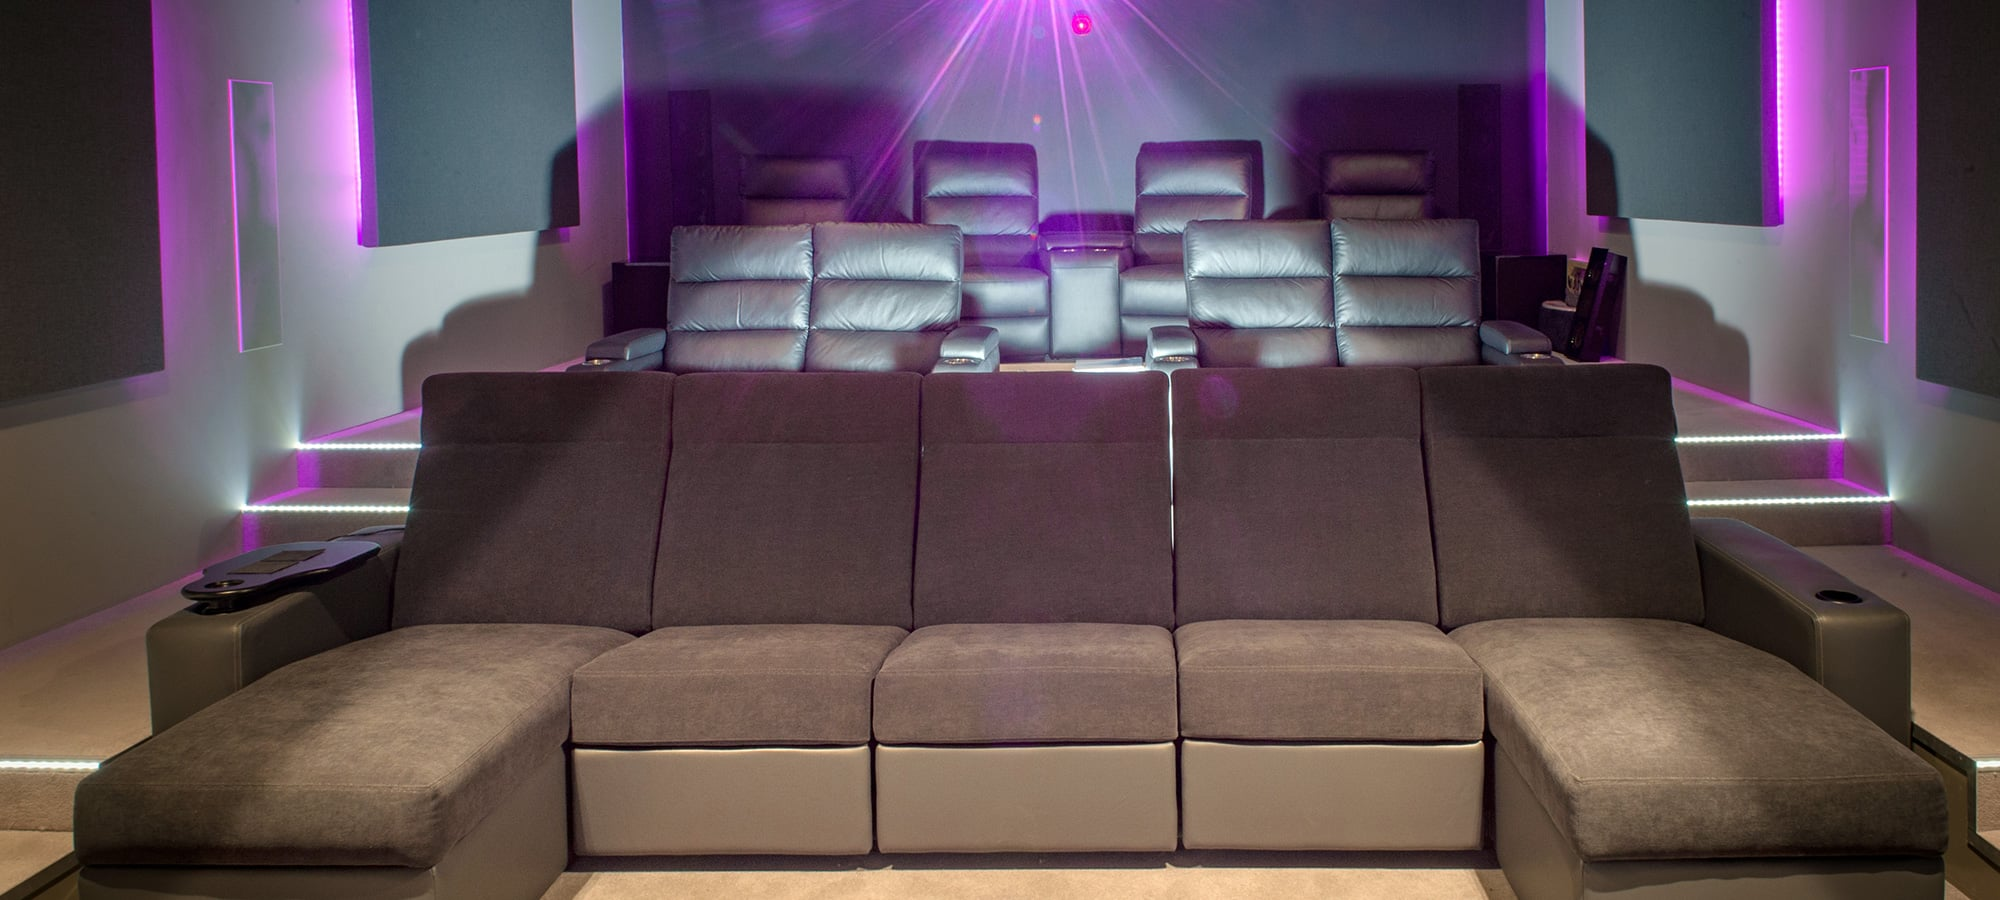 Seating Planning a Bespoke Home Cinema Installation: Your Complete Beginners' Guide